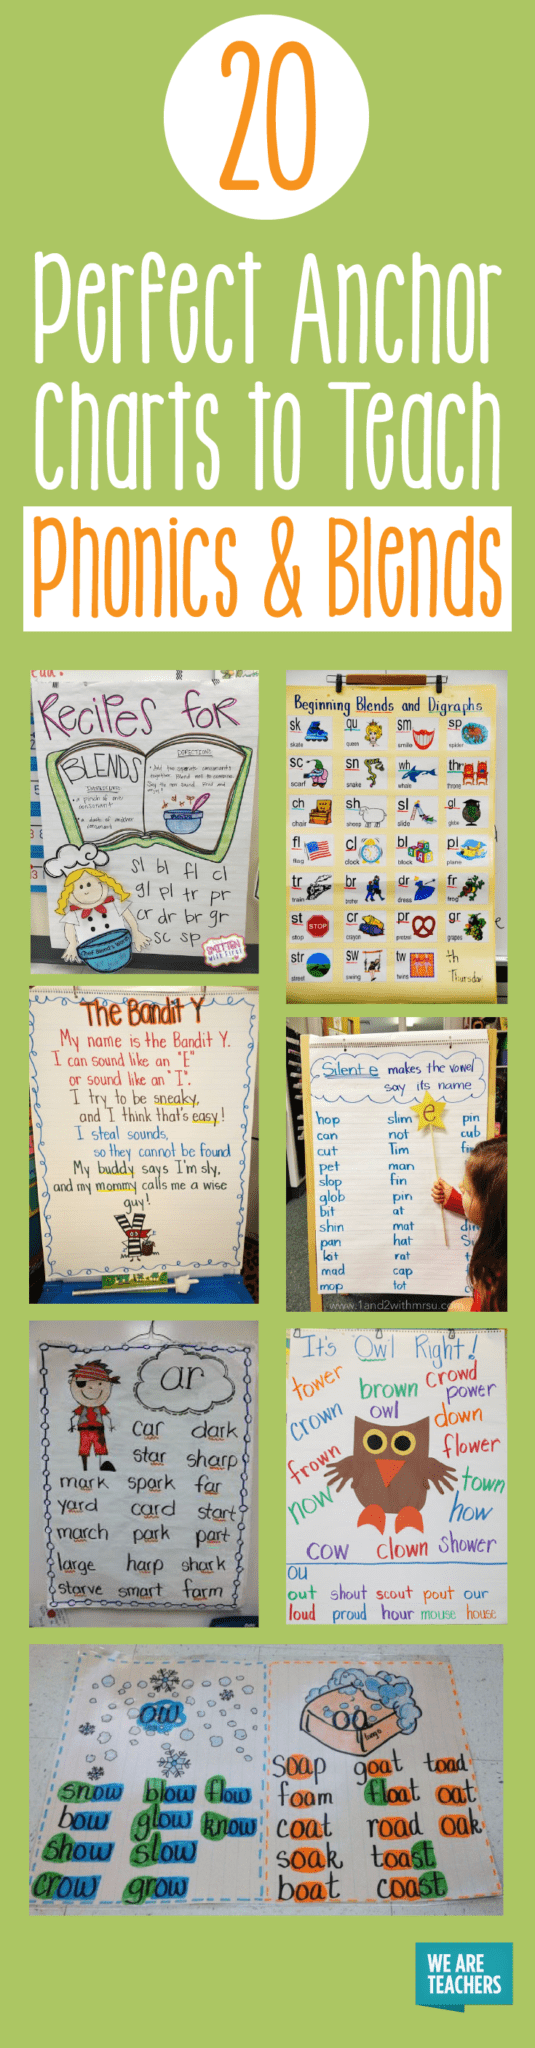 hight resolution of 20 Perfect Anchor Charts for Teaching Phonics and Blends